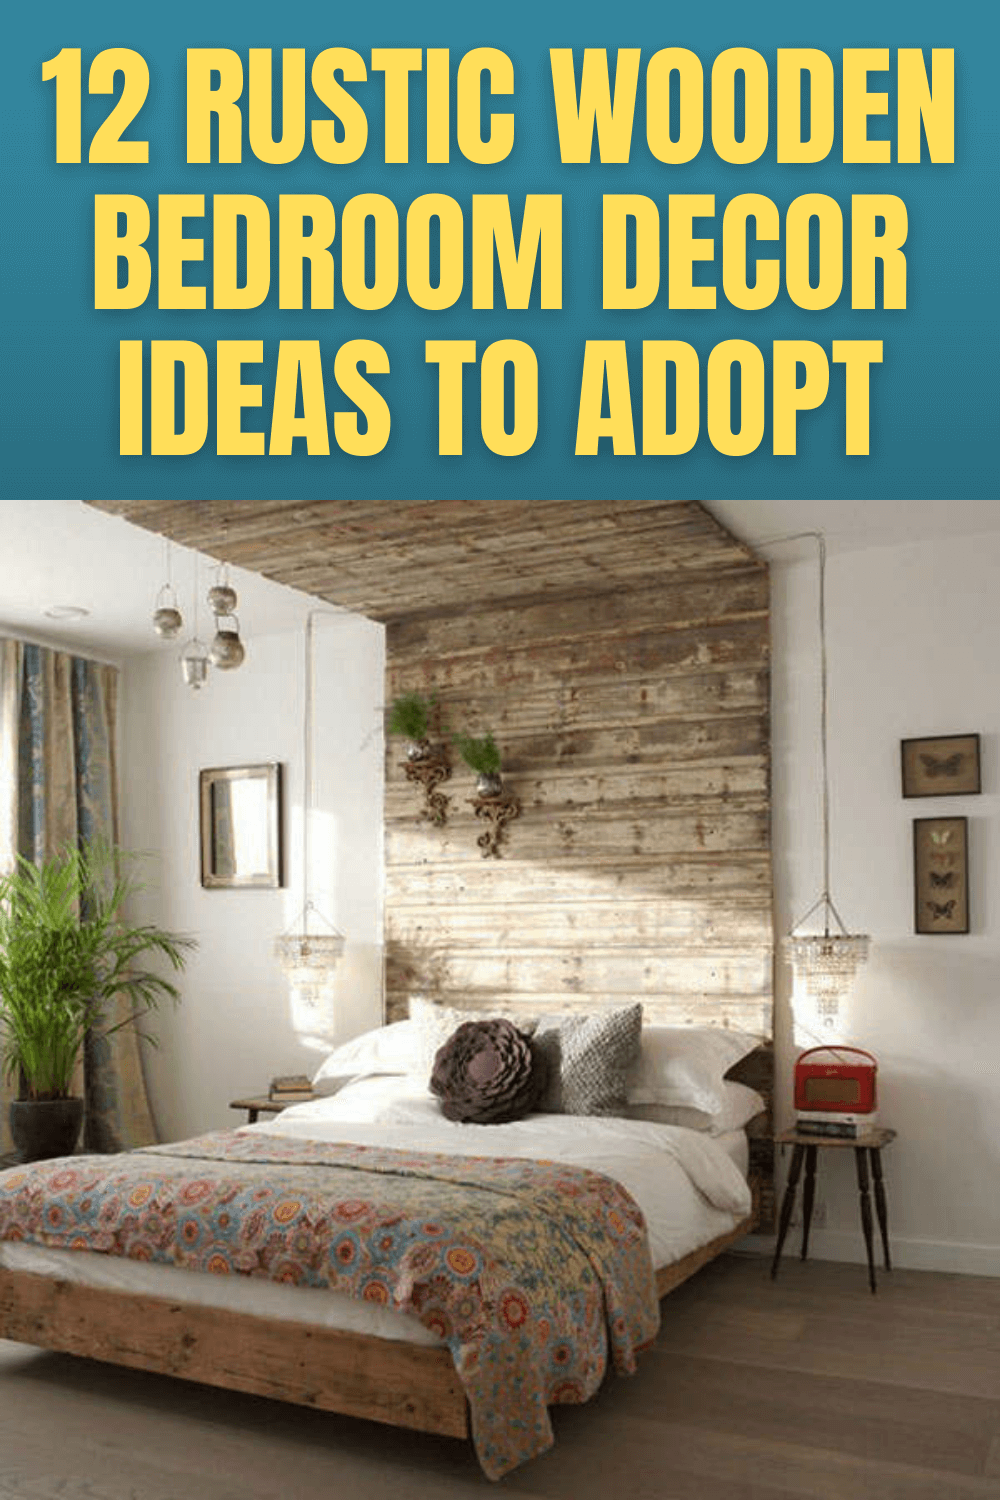 12 RUSTIC WOODEN BEDROOM DECOR IDEAS TO ADOPT